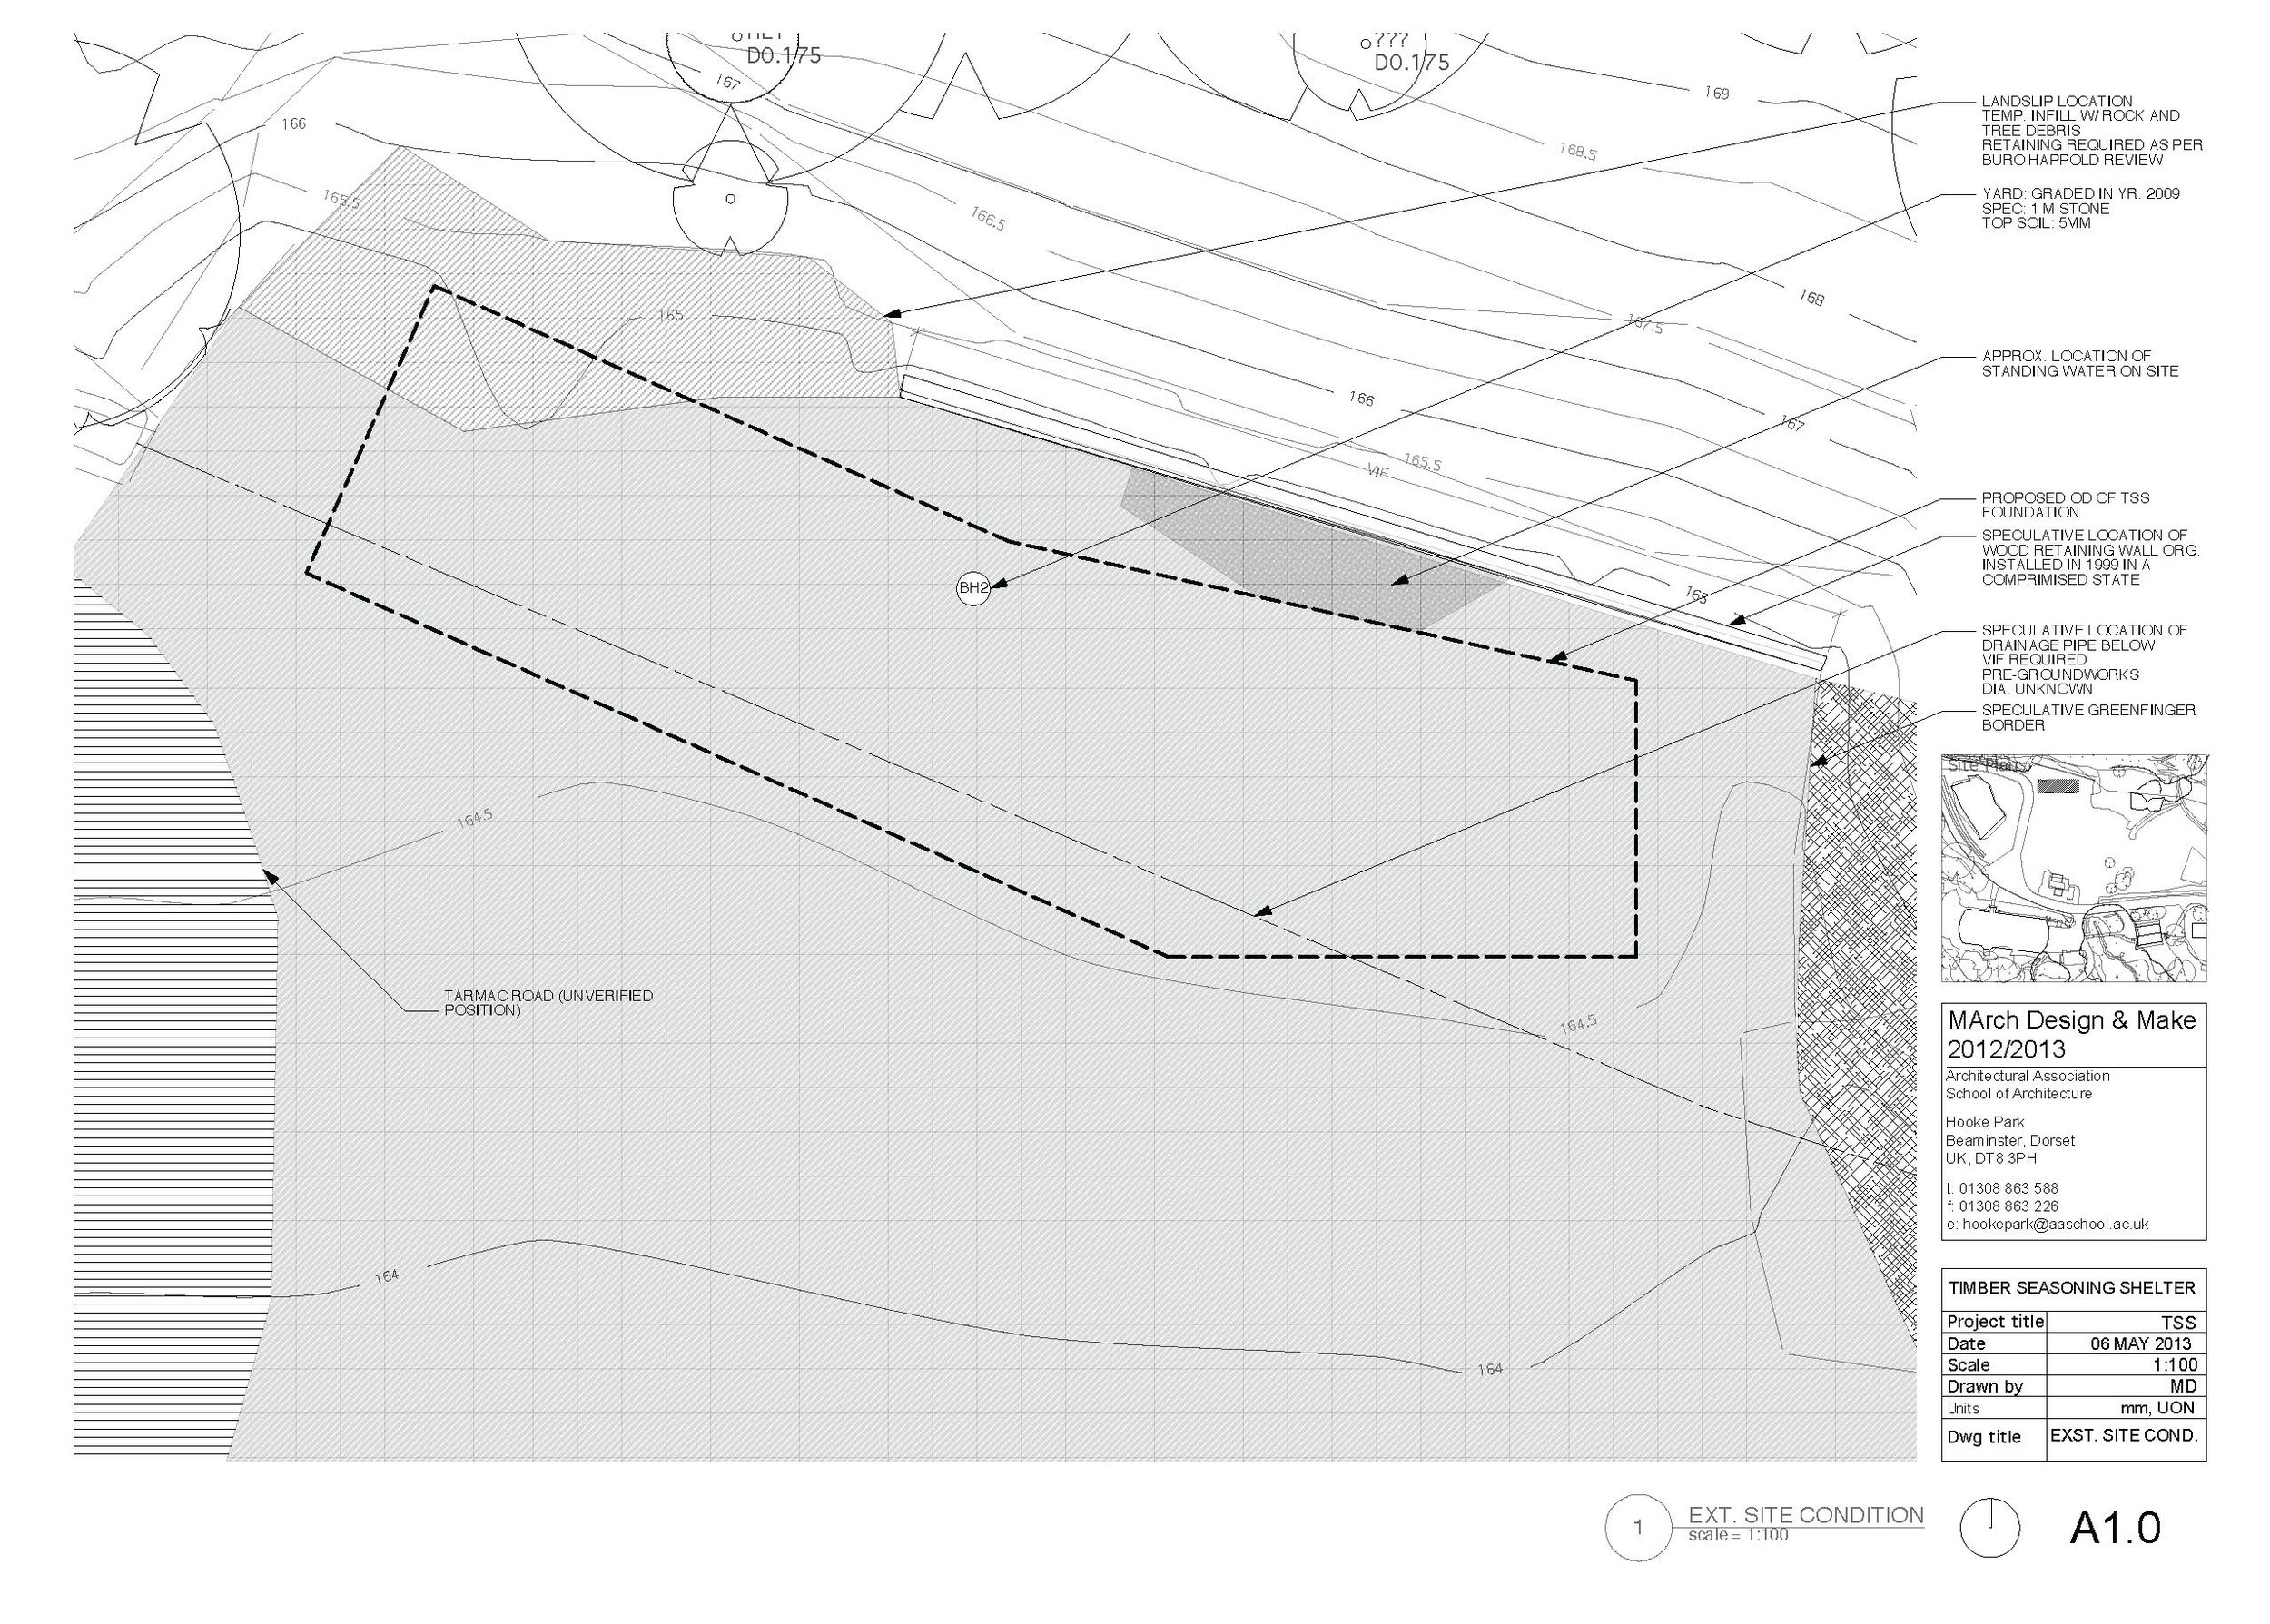 0619_13 TSS SETTING OUT DRAWINGS_Page_02.jpg